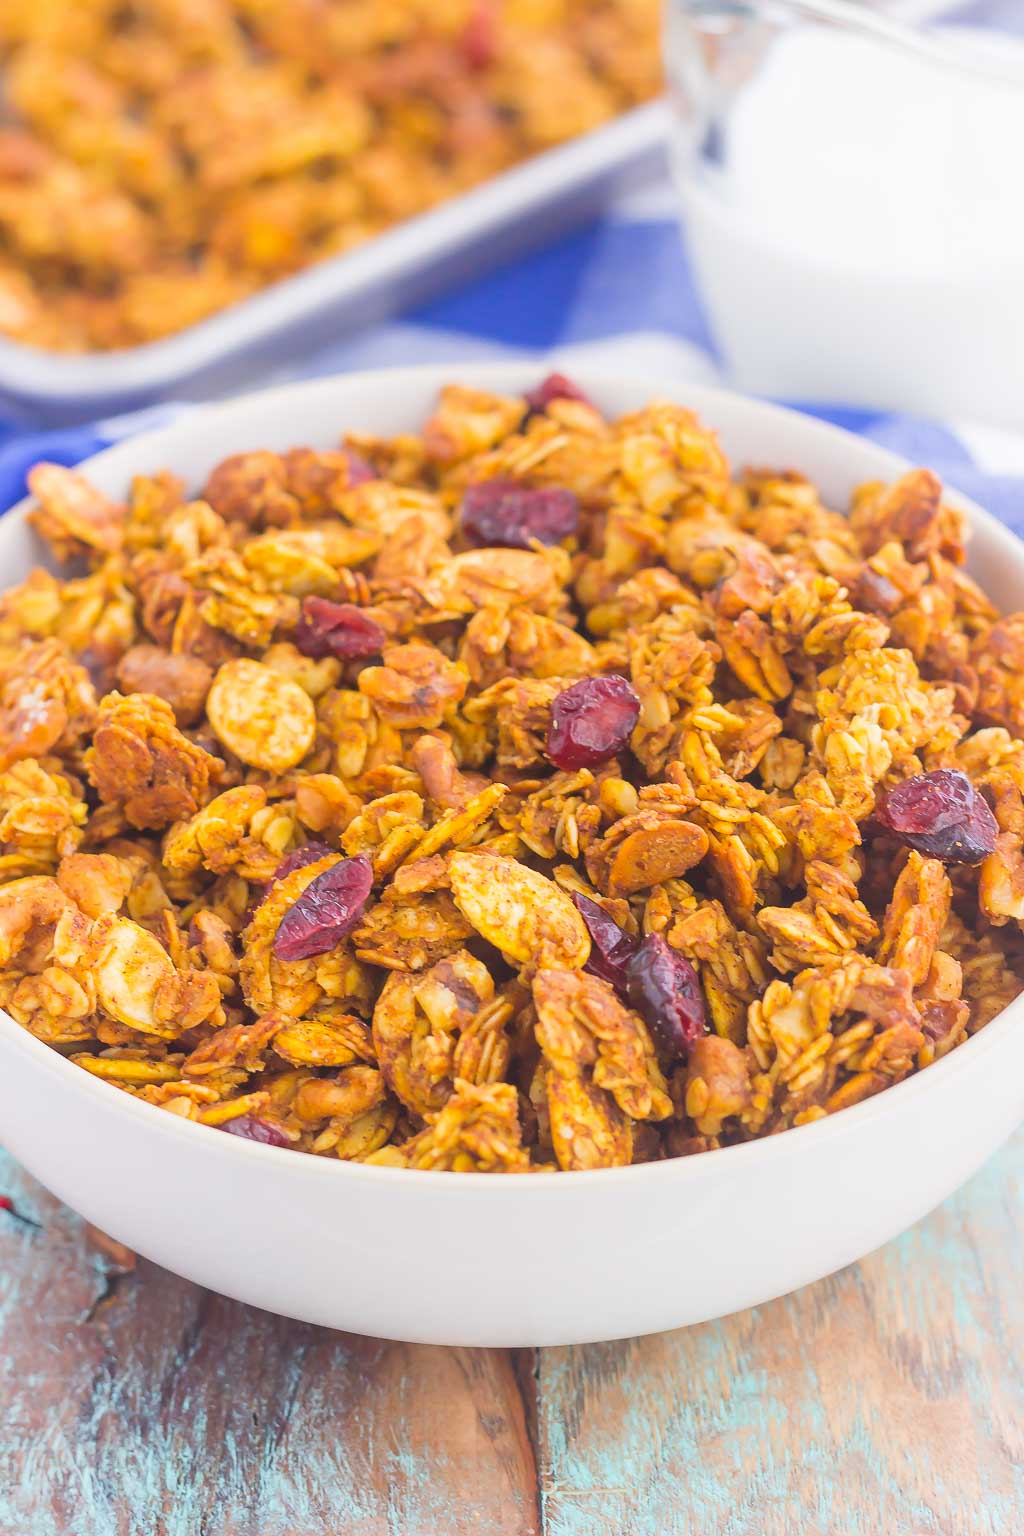 This Pumpkin Spice Granola is a delicious way to savor the flavors of fall. Hearty oats, crunchy walnuts, dried cranberries and fall spices give this granola both texture and flavor. It's simple to make and perfect to eat by the handful, with milk, or on top of yogurt or ice cream! #granola #pumpkingranola #homemadegranola #pumpkinbreakfast #pumpkinsnack #healthygranola